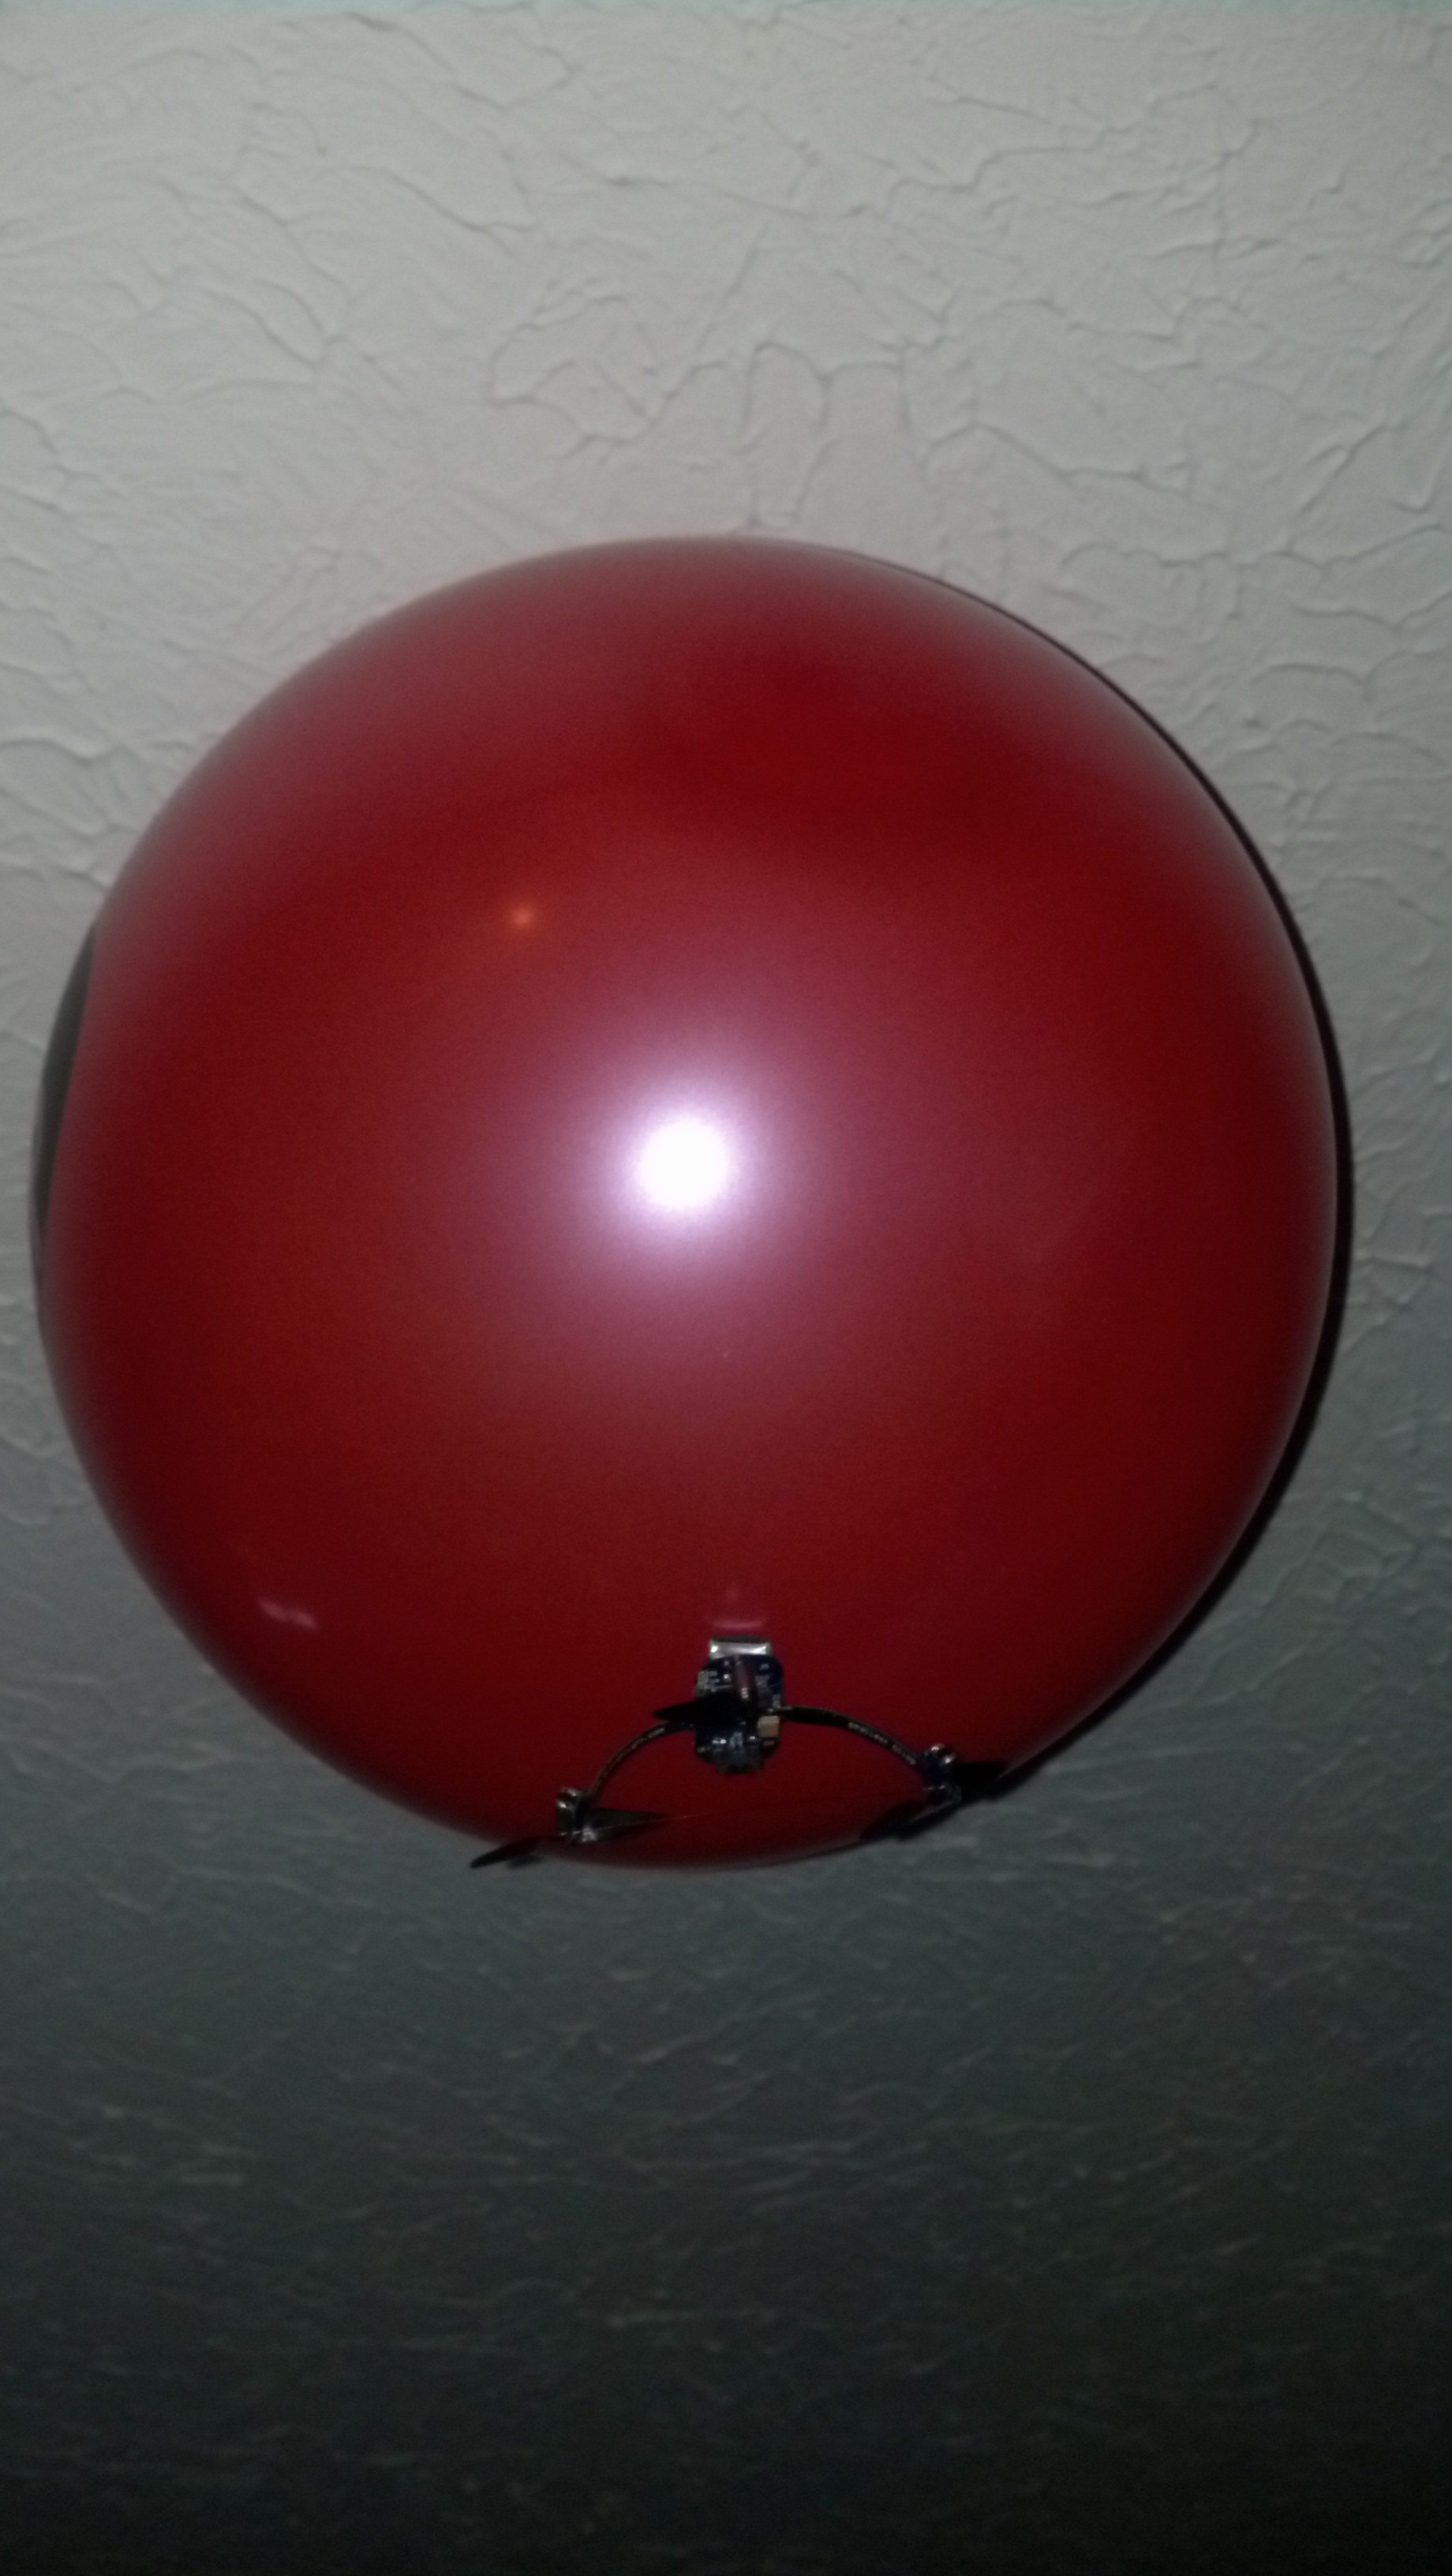 As you can see, a bit too much helium